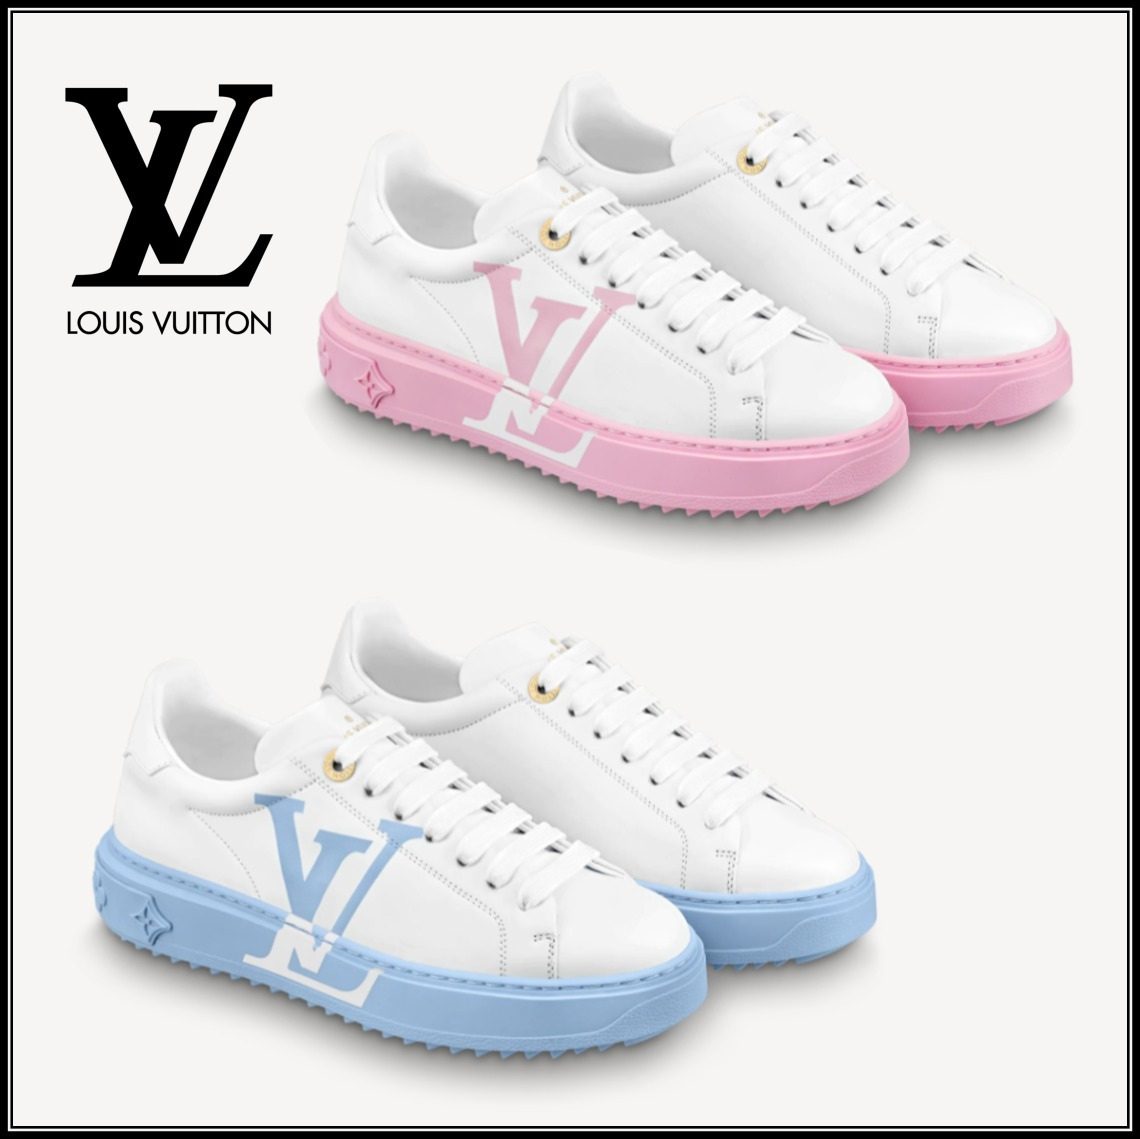 【LouisVuitton】品薄!TIME OUT TRAINERS  ライトブルー/ピンク (Louis Vuitton/スニーカー) 1A8MZR1A8MZB